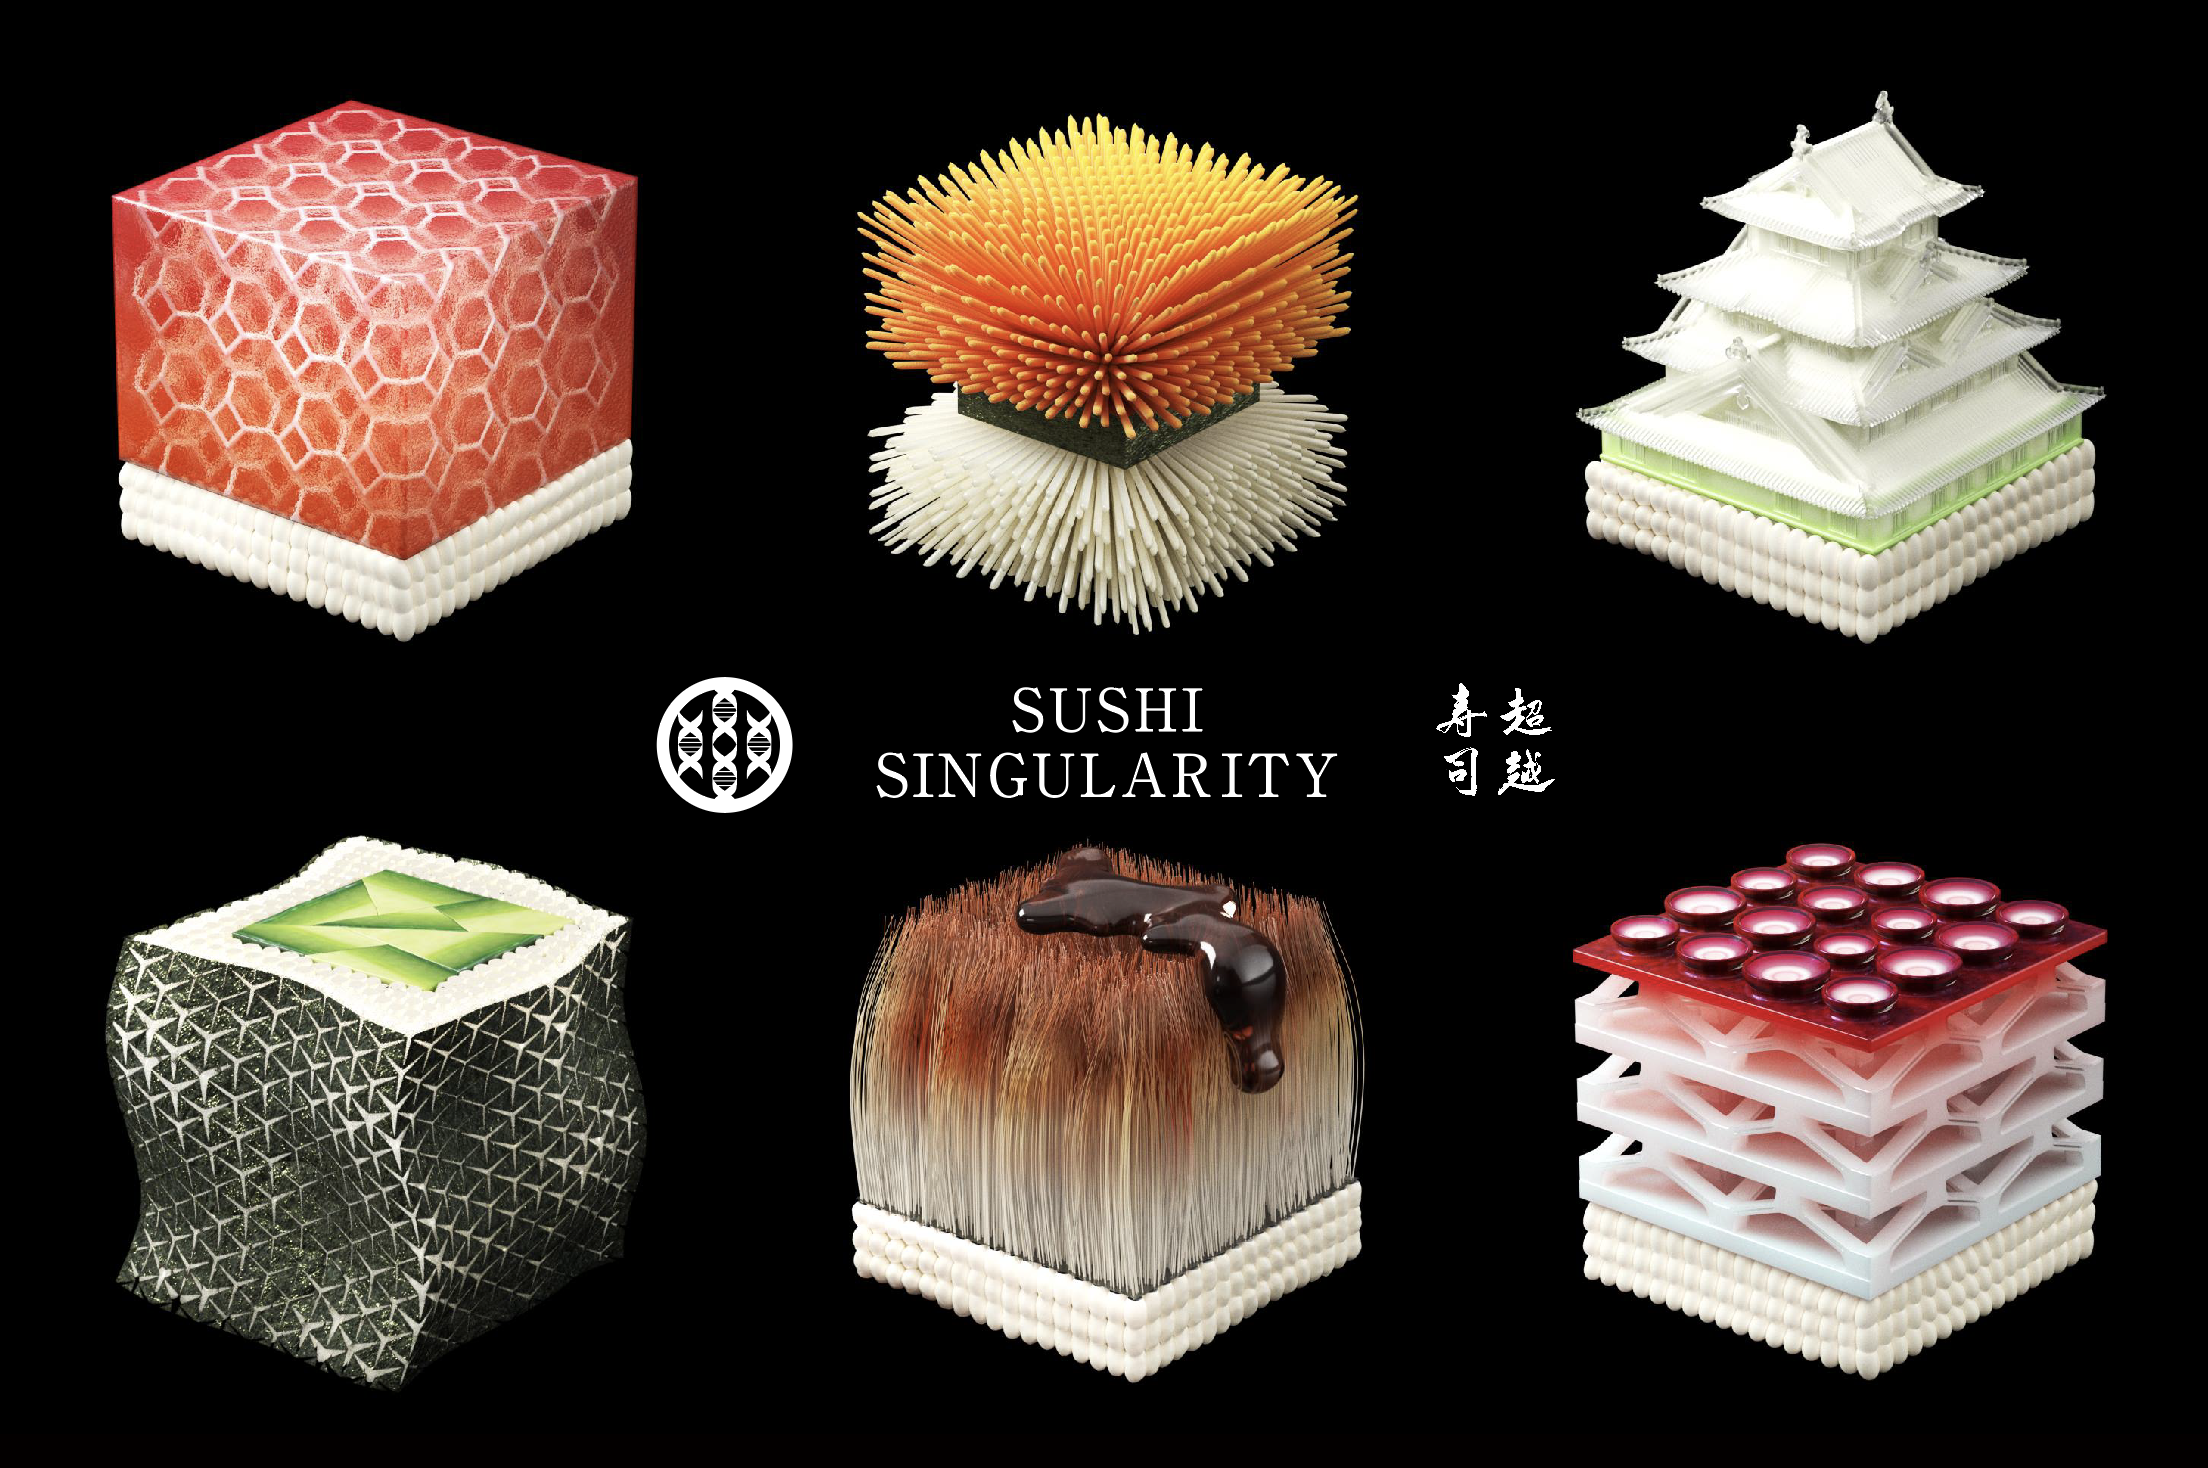 This Japanese Company Wants to 3D-Print Custom Sushi for Each Diner